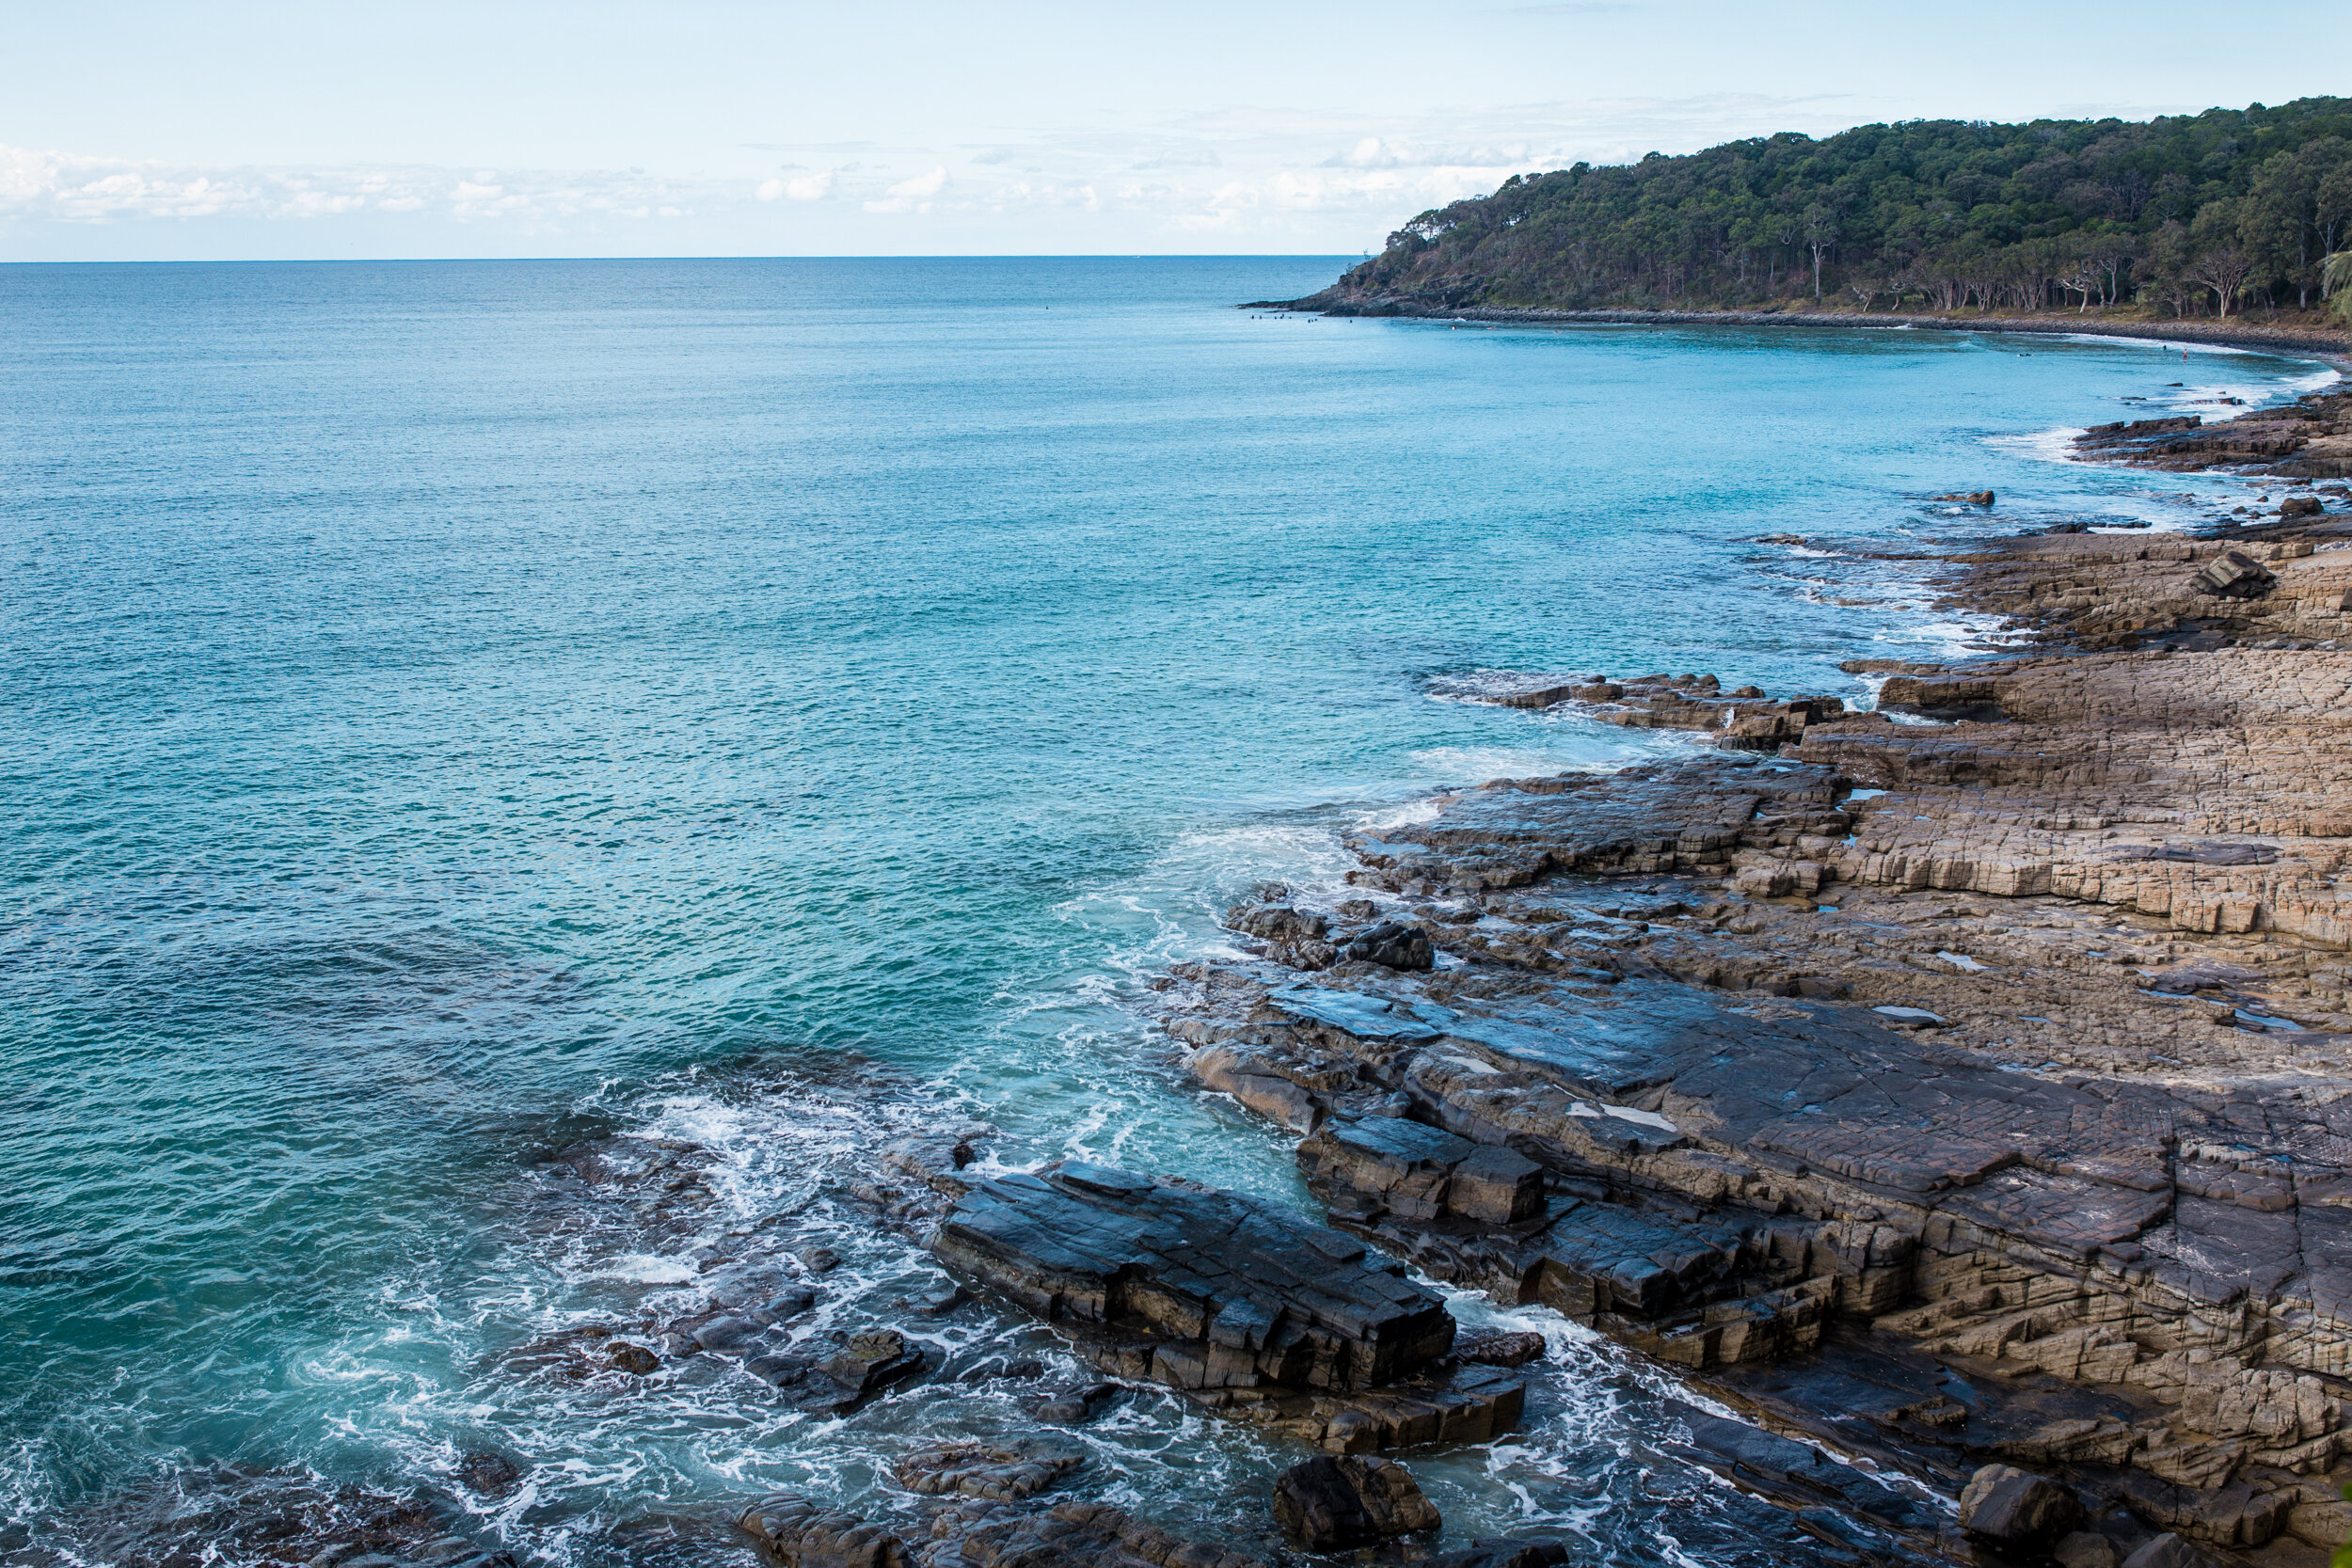 Looking out on the coastline from Boiling Pot in Noosa National Park.